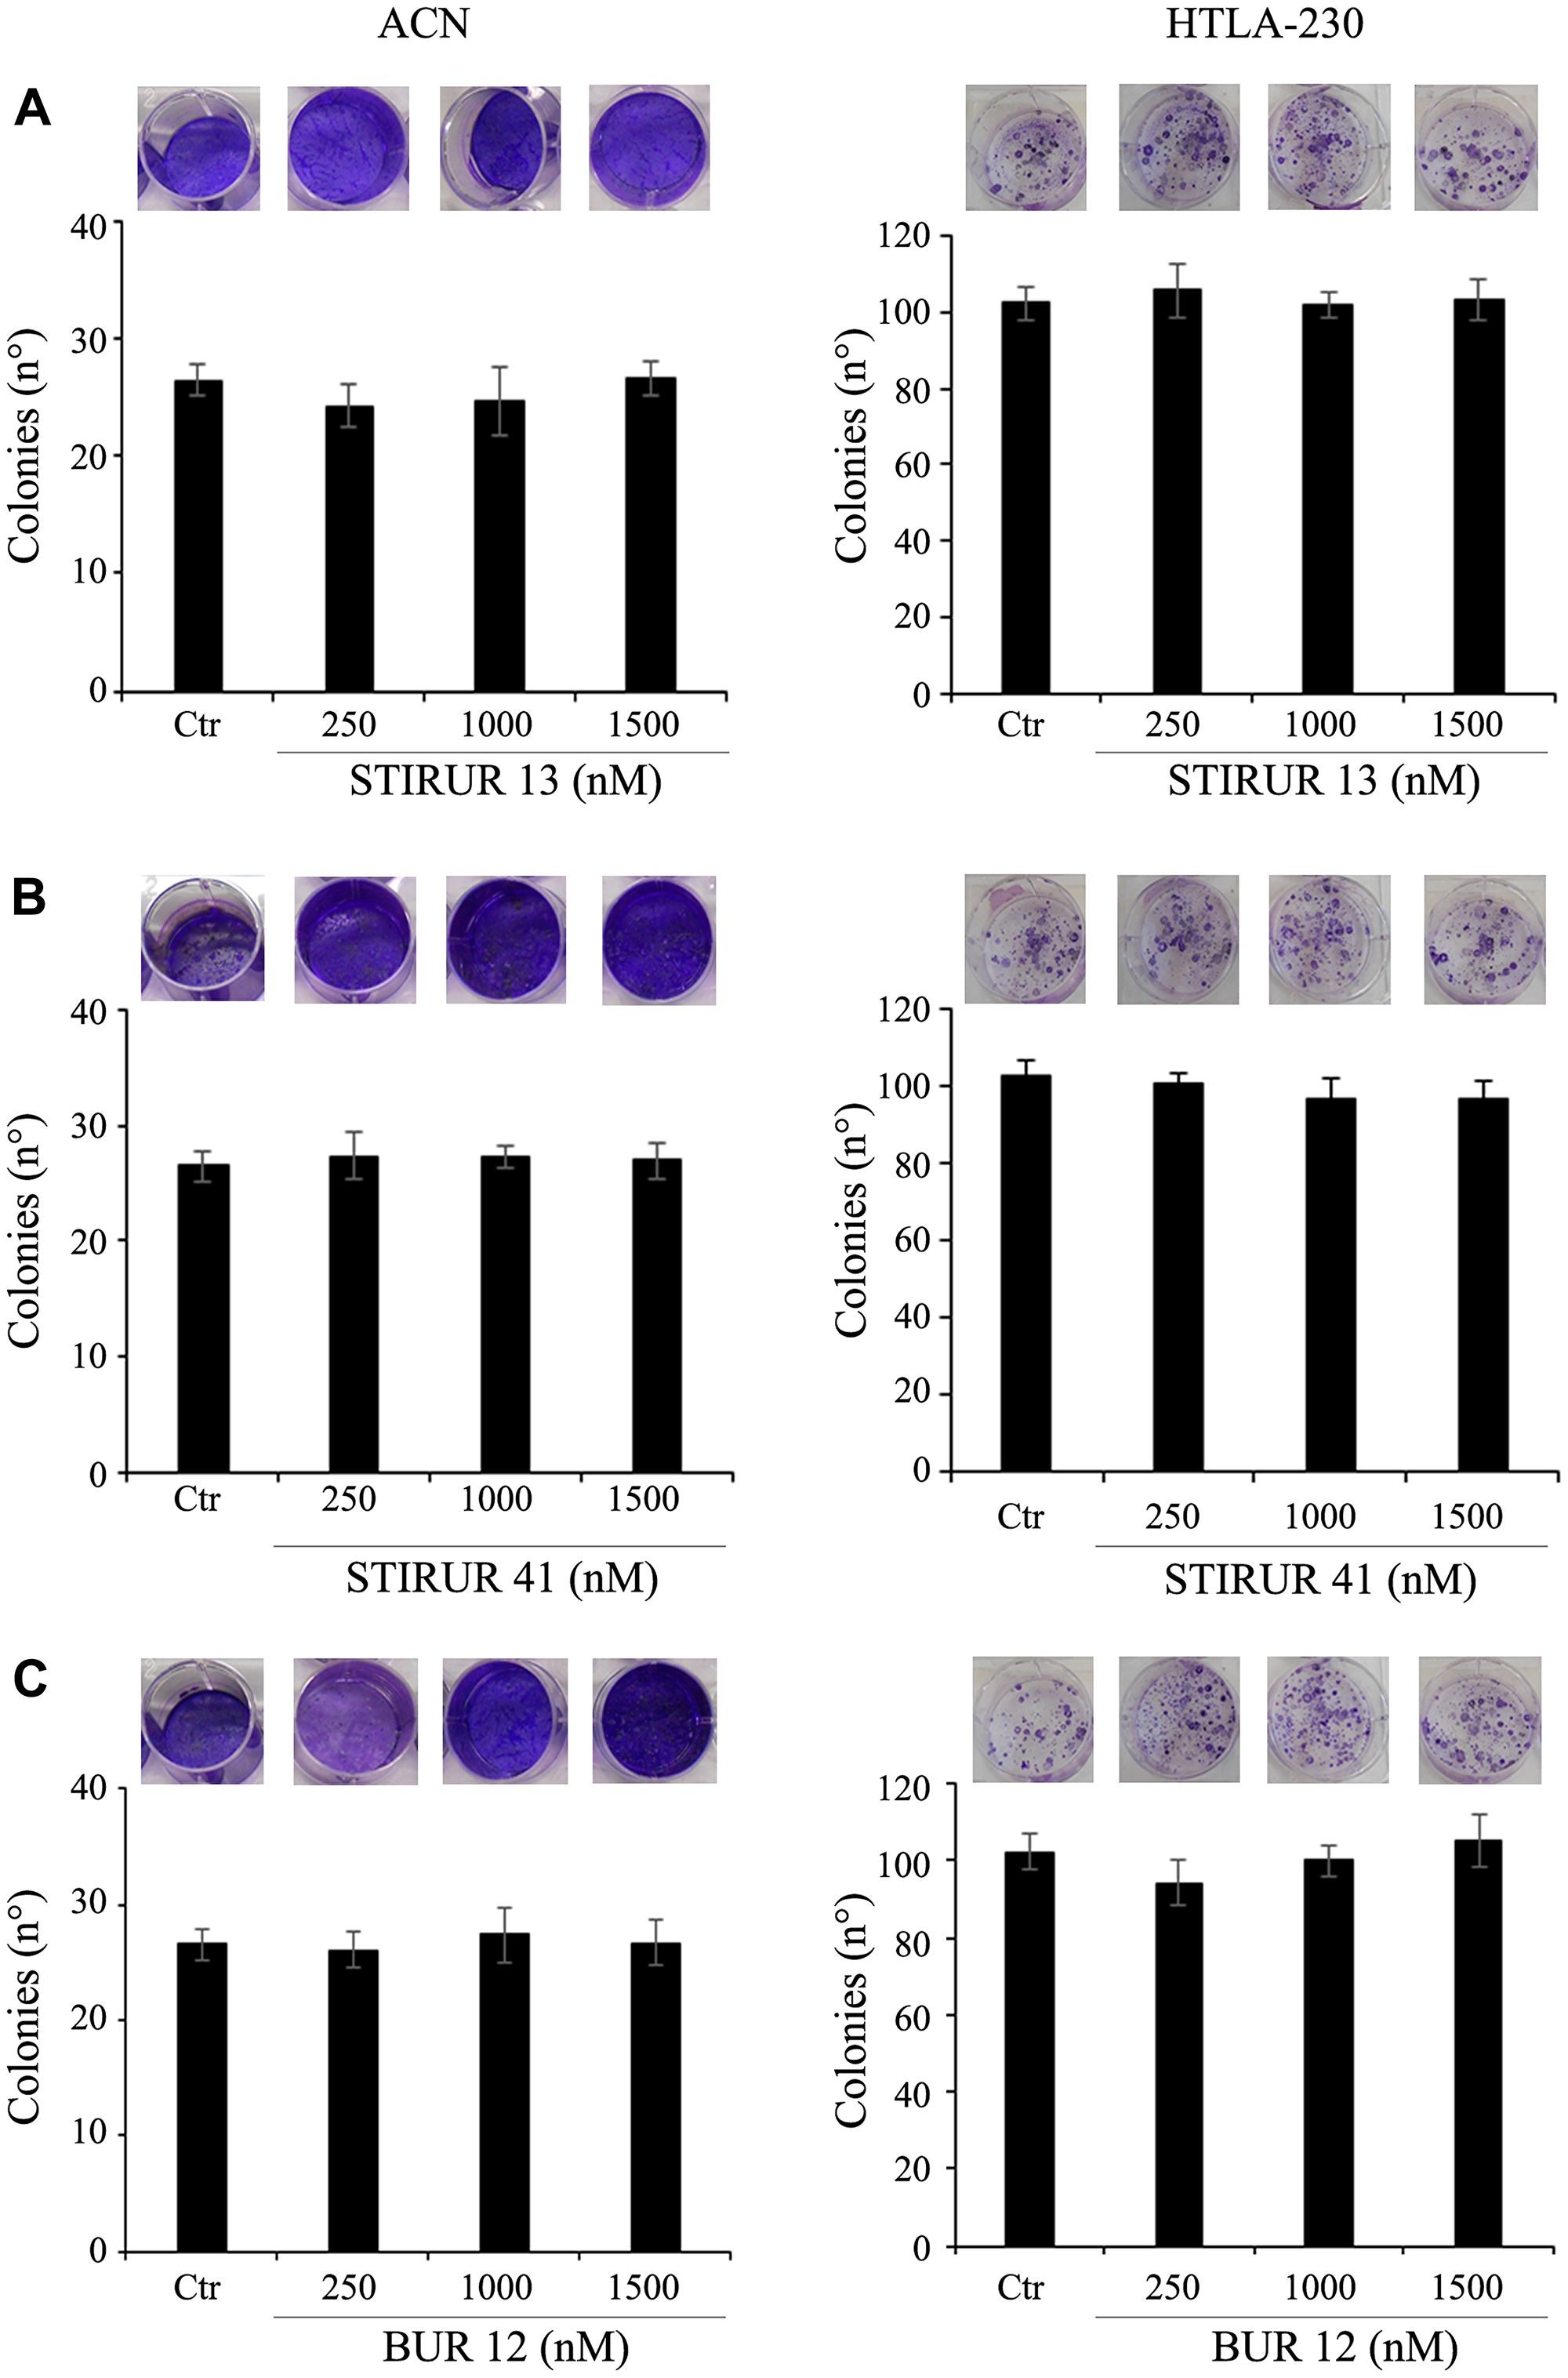 STIRUR 13, STIRUR 41 and BUR 12 did not affect the clonogenic potential of ACN and HTLA-230 cells.